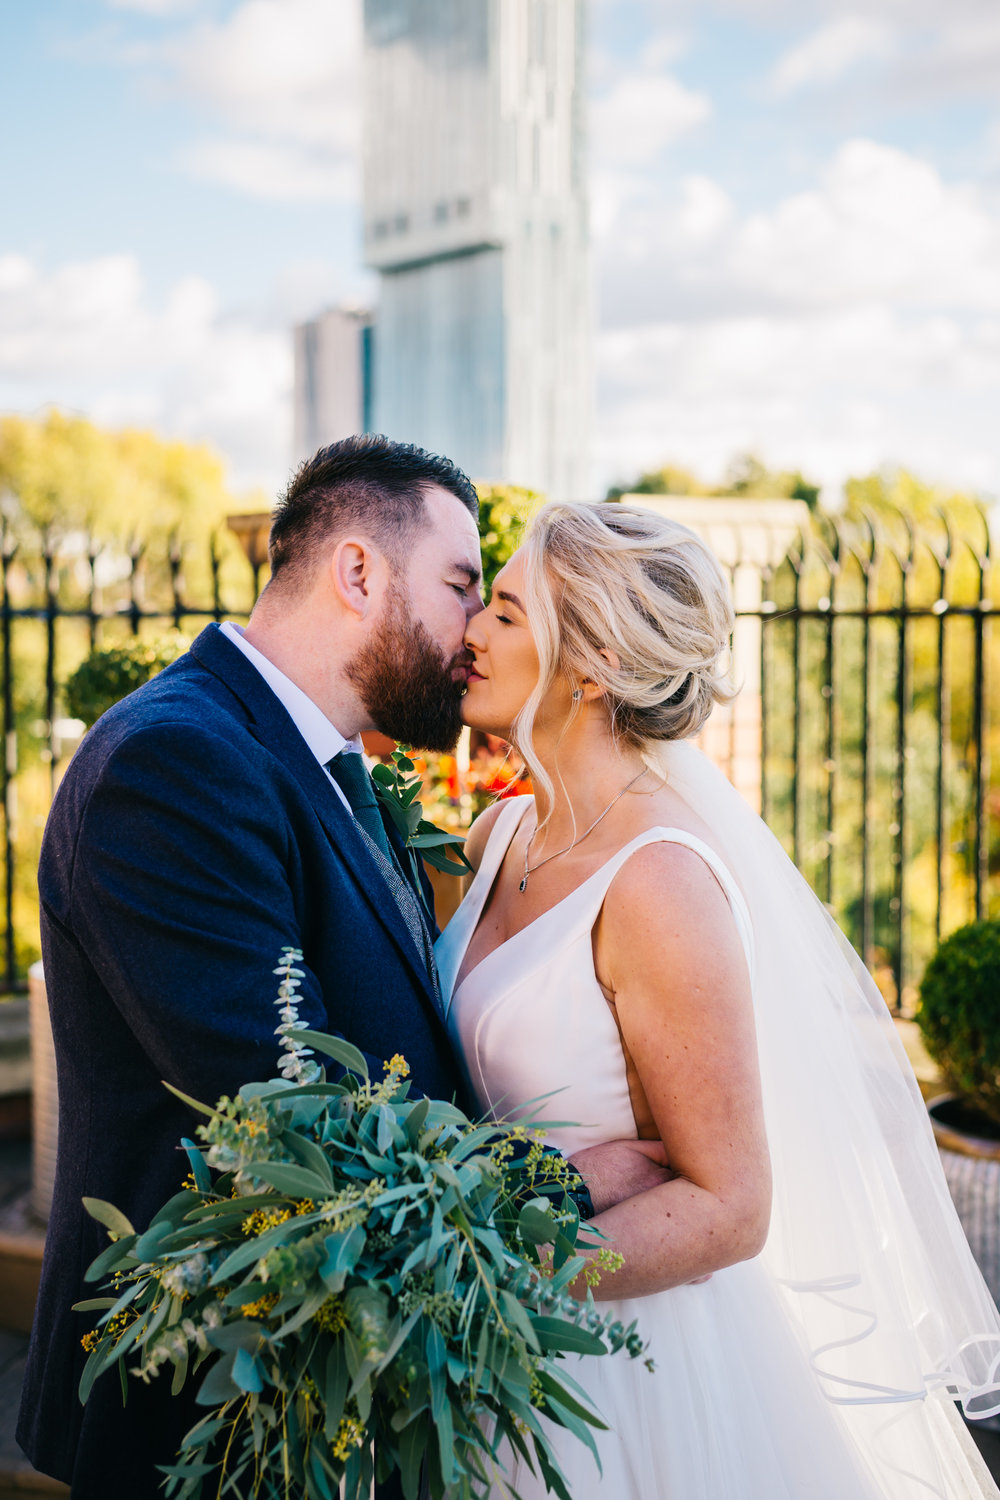 """Andrew & Charlotte - """"Absolutely over the moon with our wedding photos, Laura made us feel so at ease. We really felt like it was a friend taking our photographs.. the quality of the photos are beautiful and very natural.. we highly recommend laura if your looking for some natural and quirky photos.."""""""